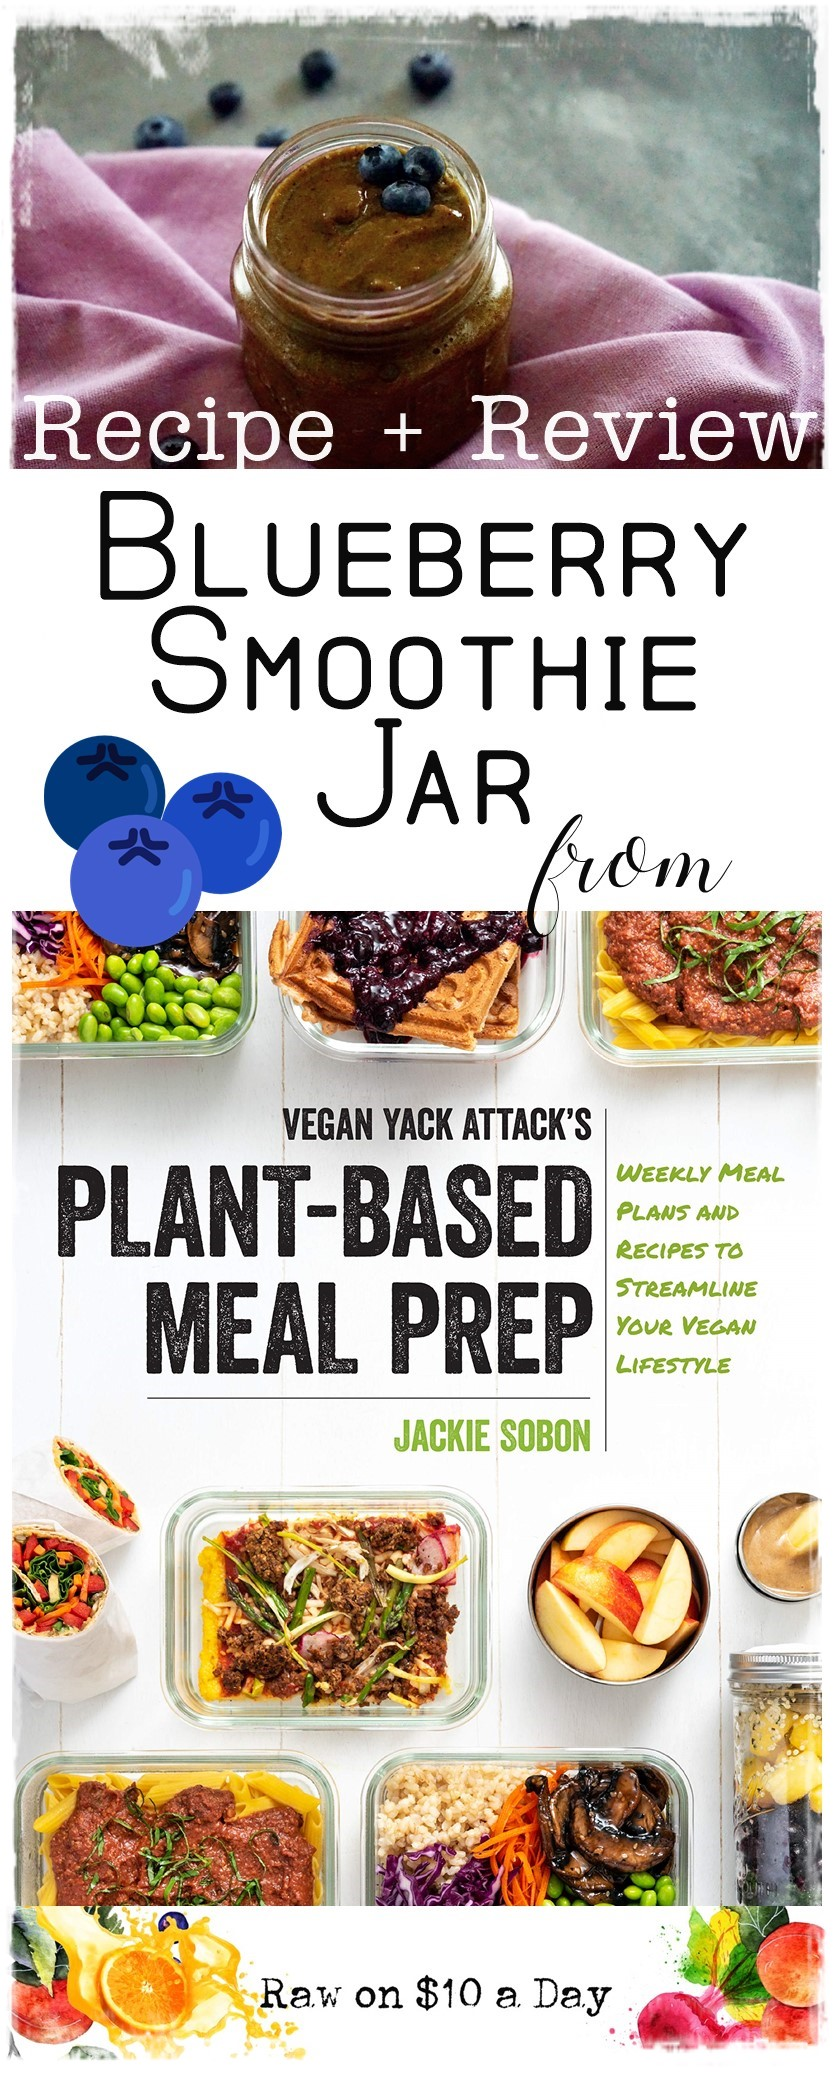 Blueberry Smoothie Jar from Plant-Based Meal Prep by Jackie Sobon at Vegan Yack Attack Rawon10 2 #VYAplantbasedmealprep #veganyackattack PIN IT